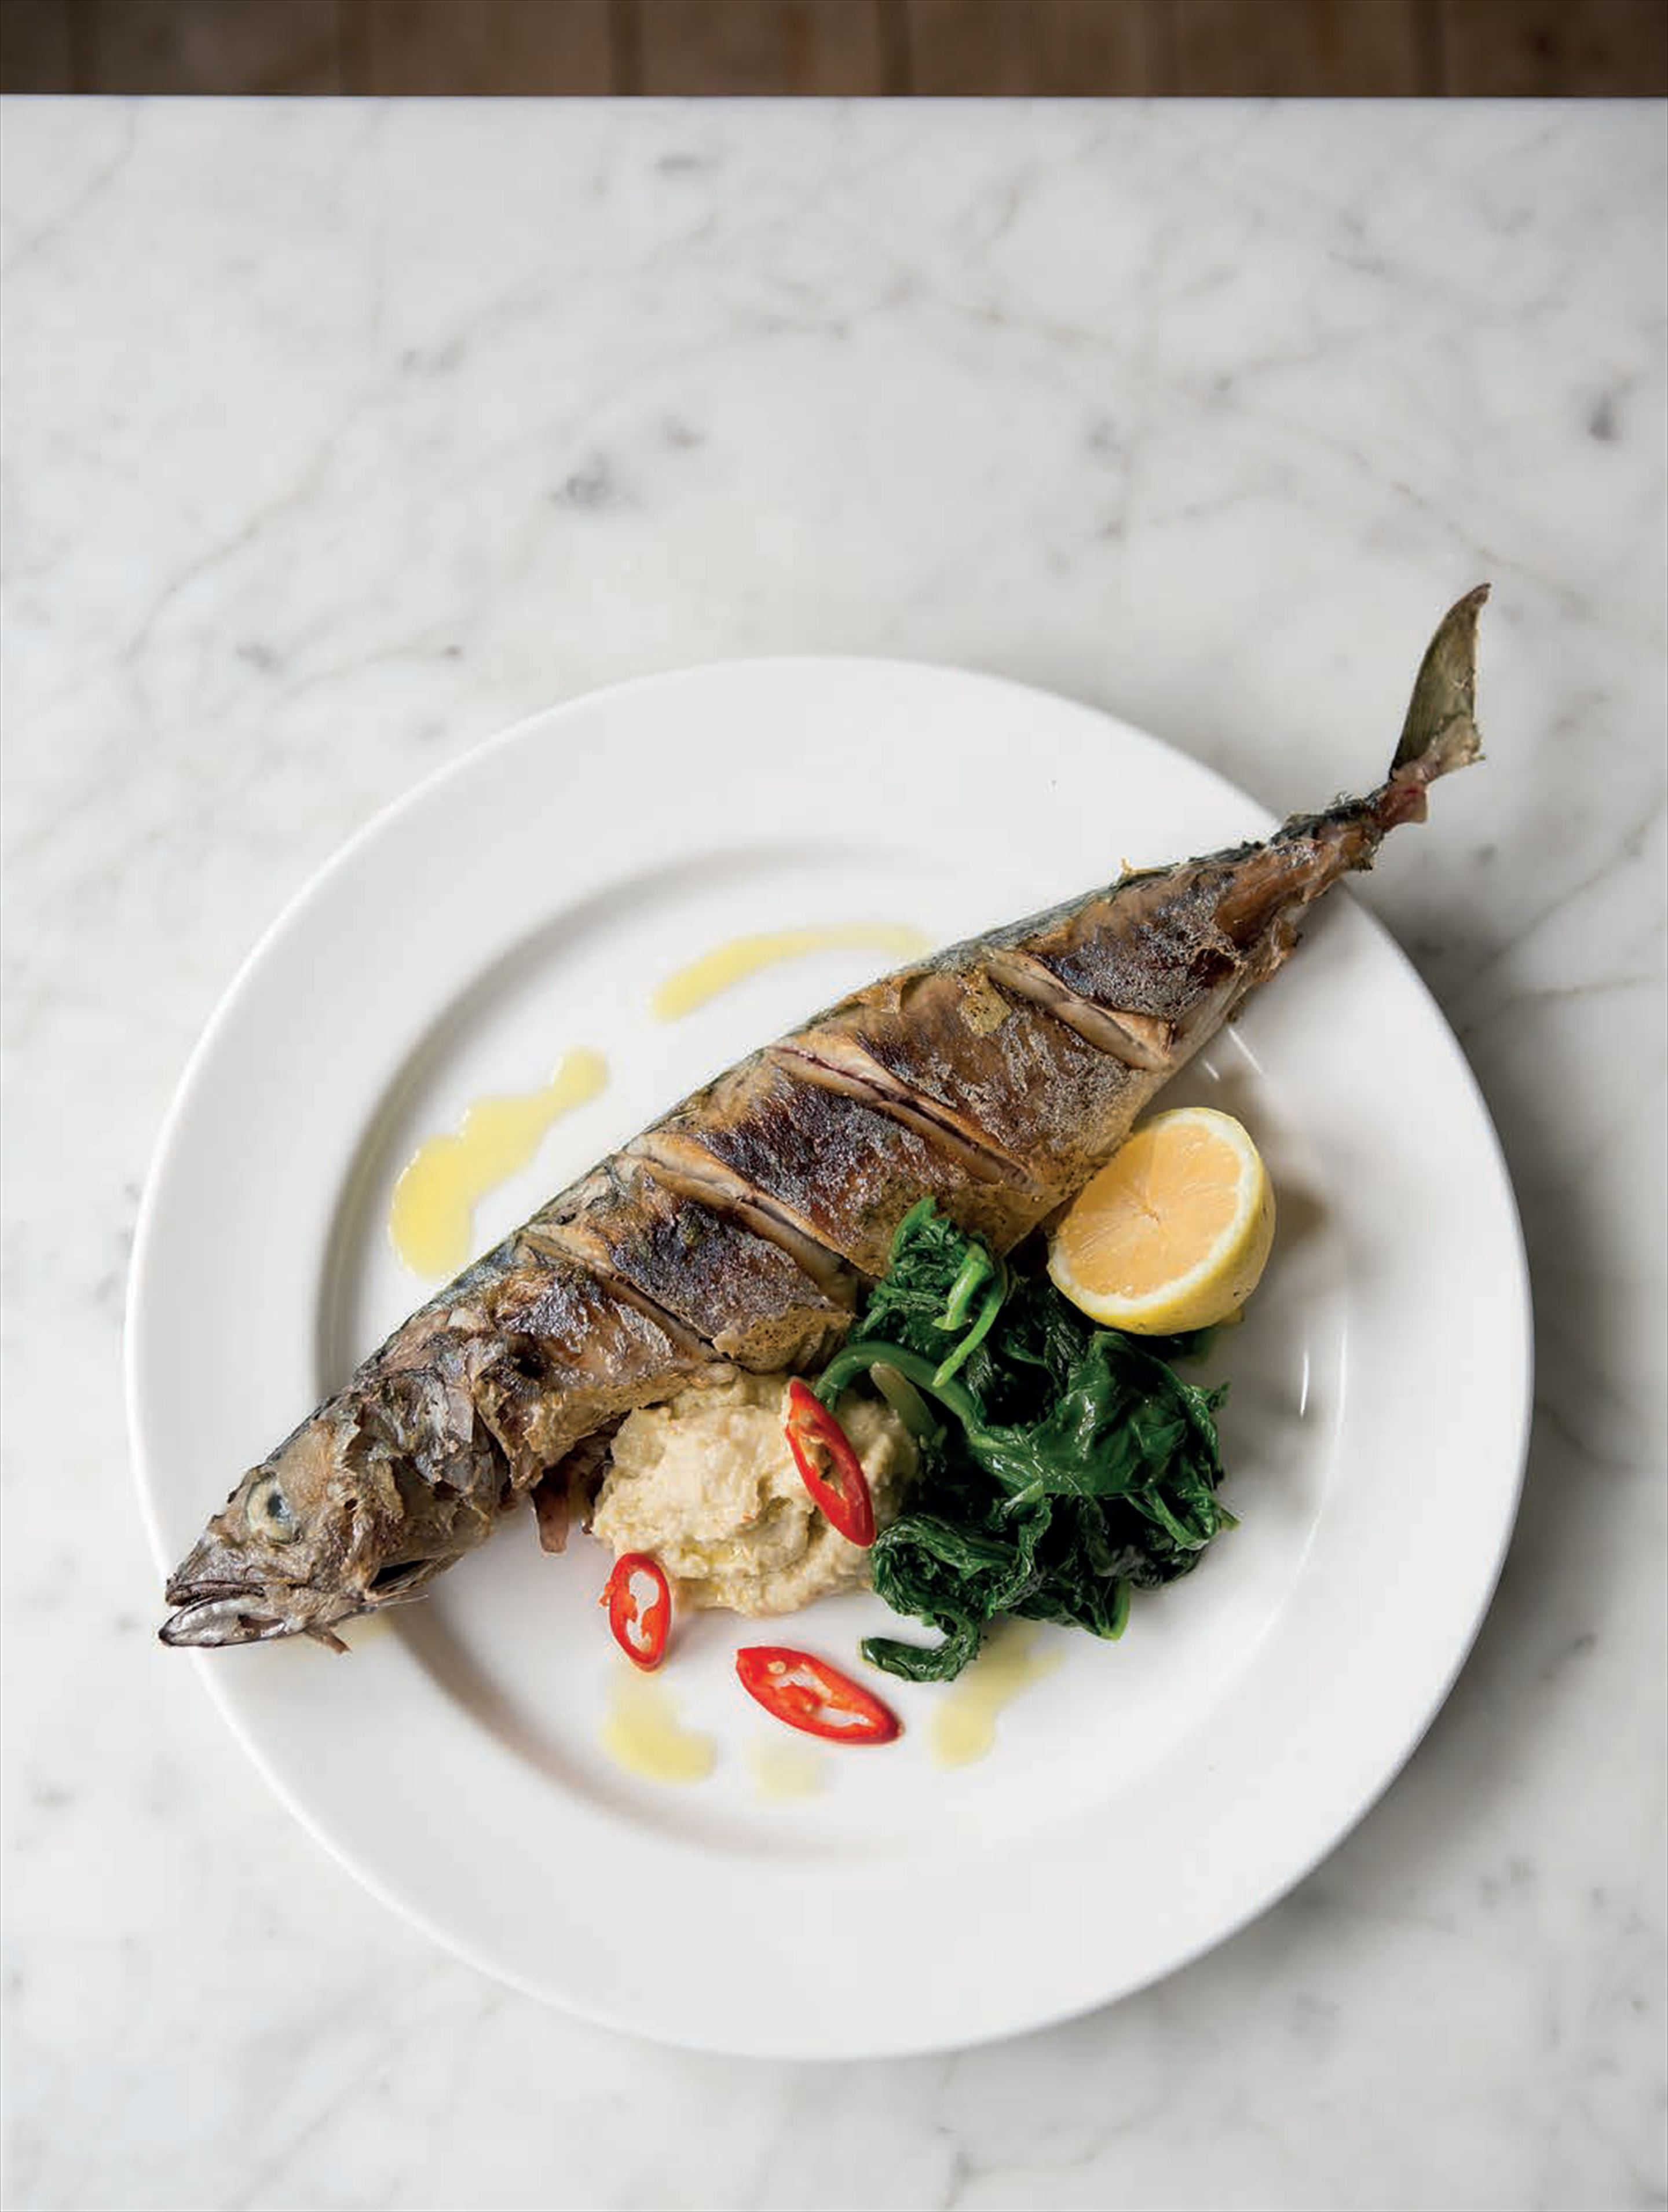 Mackerel with bread and almond sauce